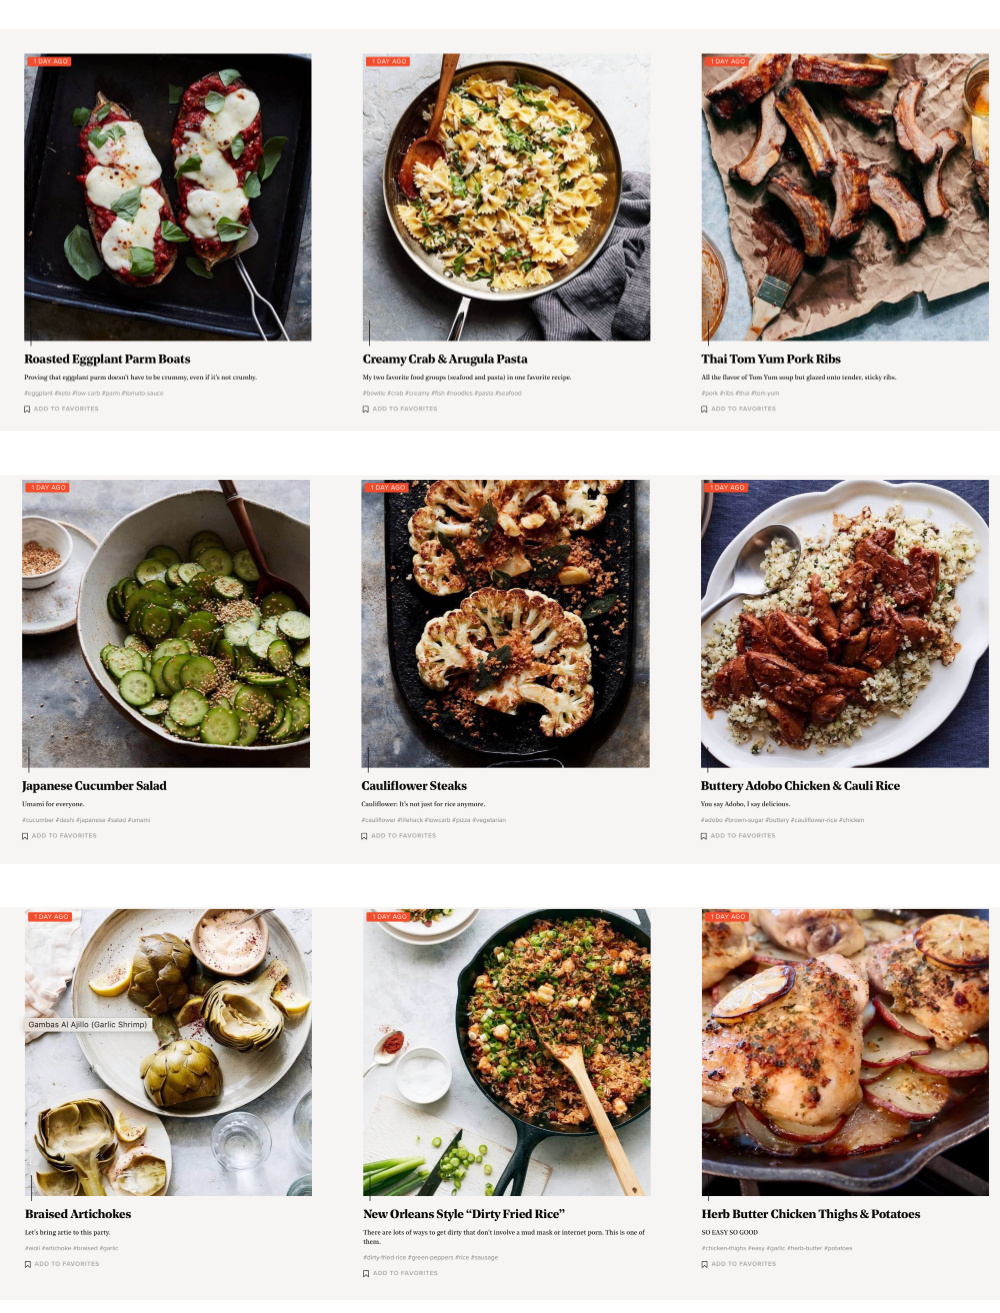 Find fantastic, down-to-earth recipes on the new Cravings by Chrissy Teigen food blog